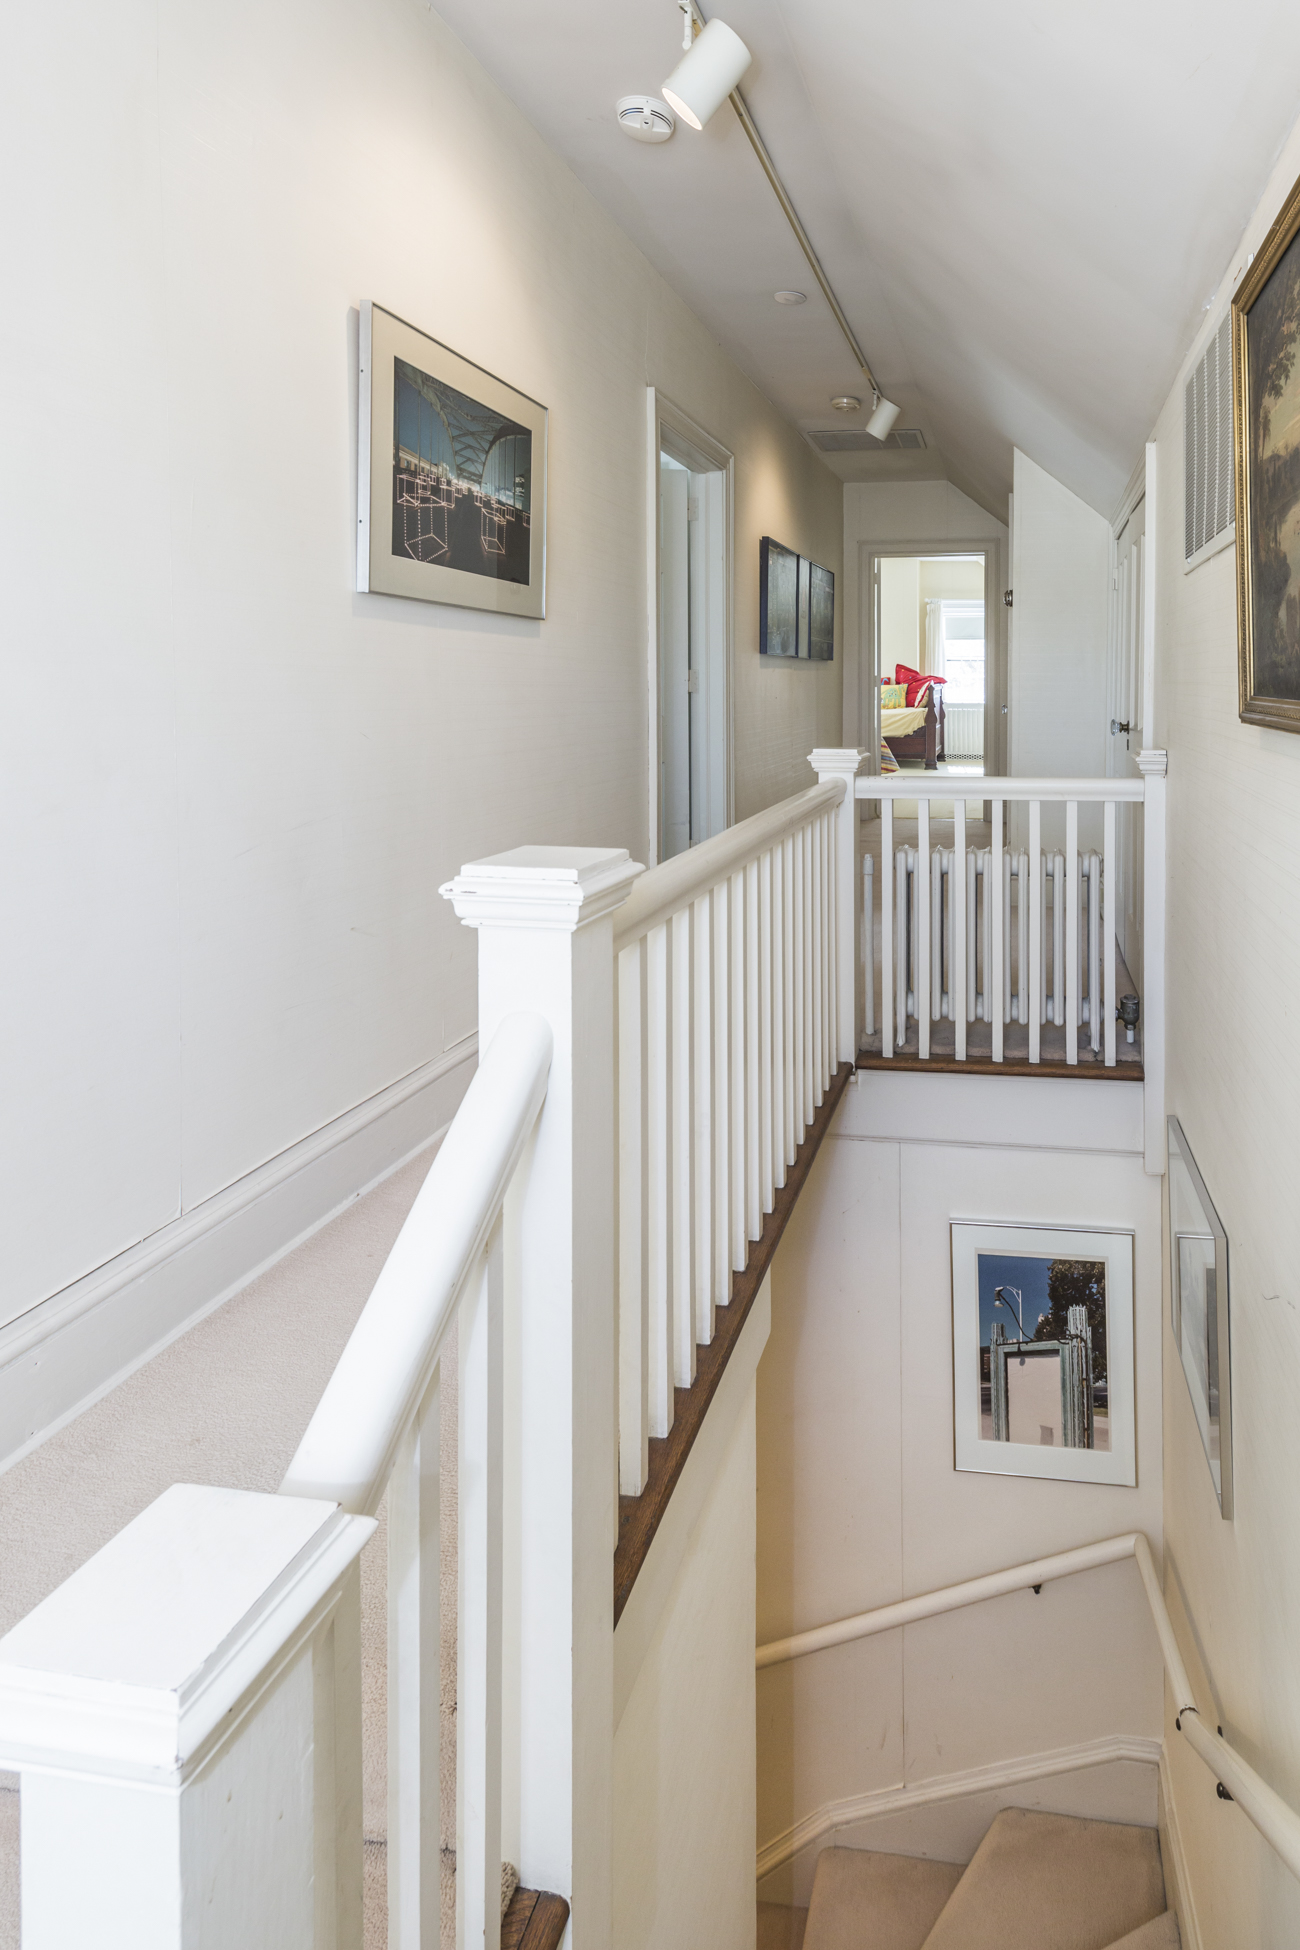 Additional photo for property listing at A Warm and Noble Presence in the Western Section 80 Westcott Road Princeton, Нью-Джерси 08540 Соединенные Штаты